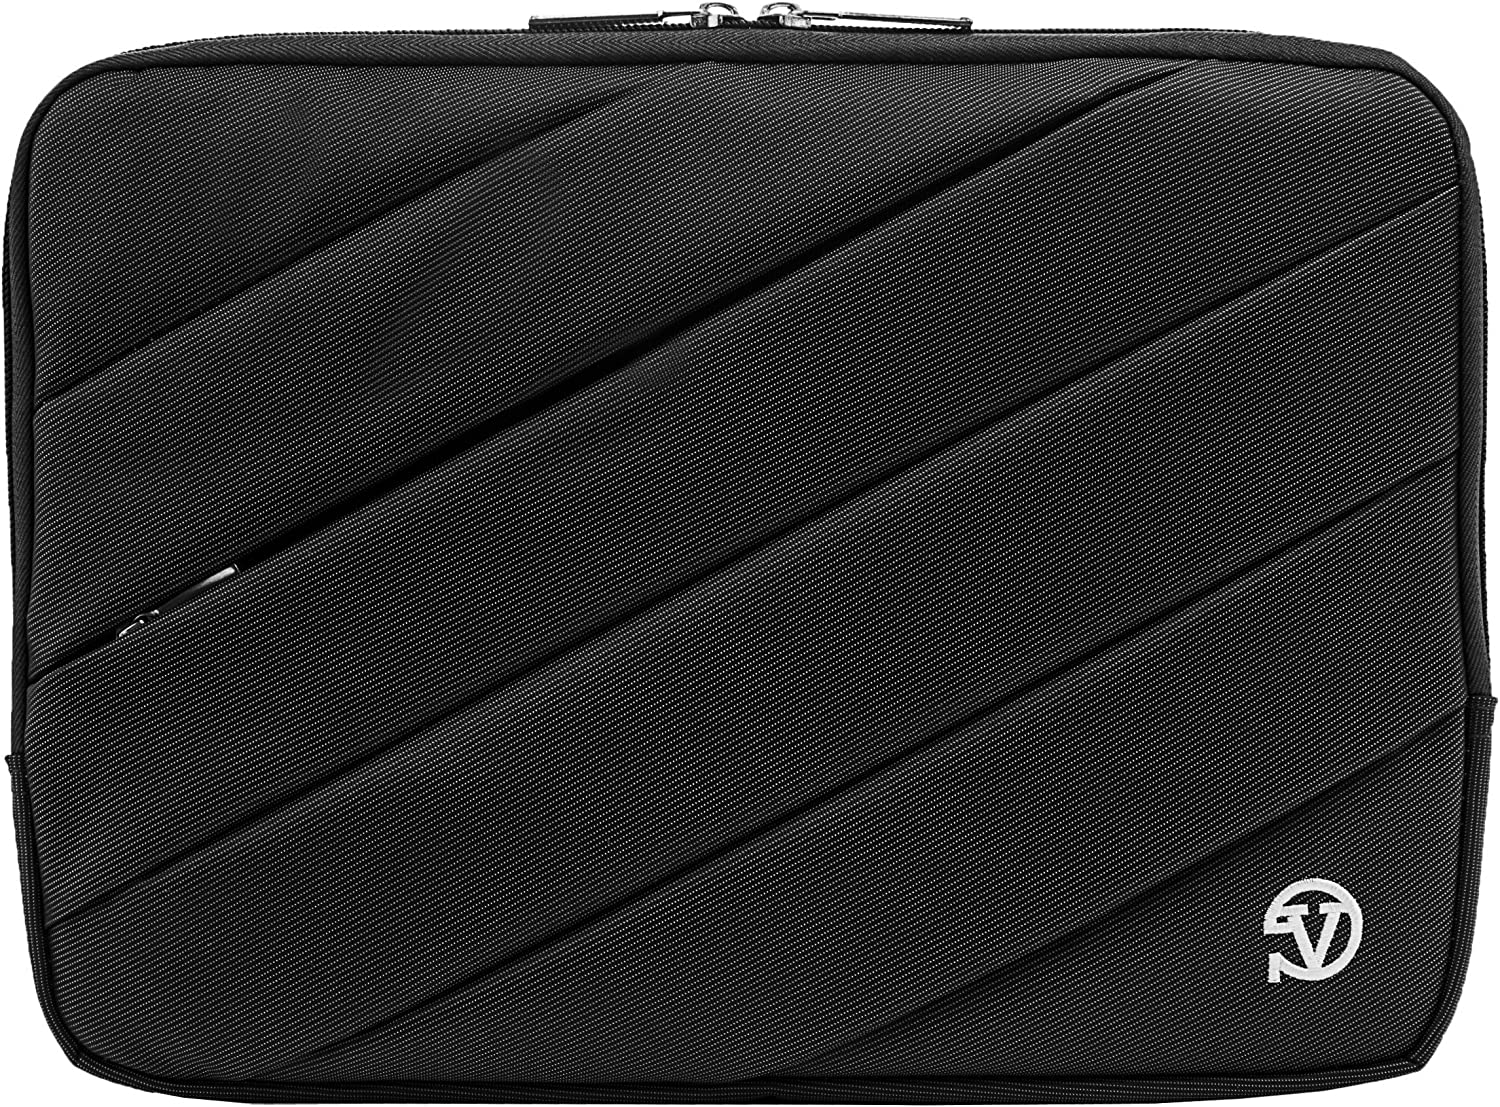 Protective Shock Absorbing Laptop Sleeve Case (Black, 11.6 to 12.5 inch) for Dell Inspiron 11, Latitude 11 12, ChromeBook, Education Series, XPS 12